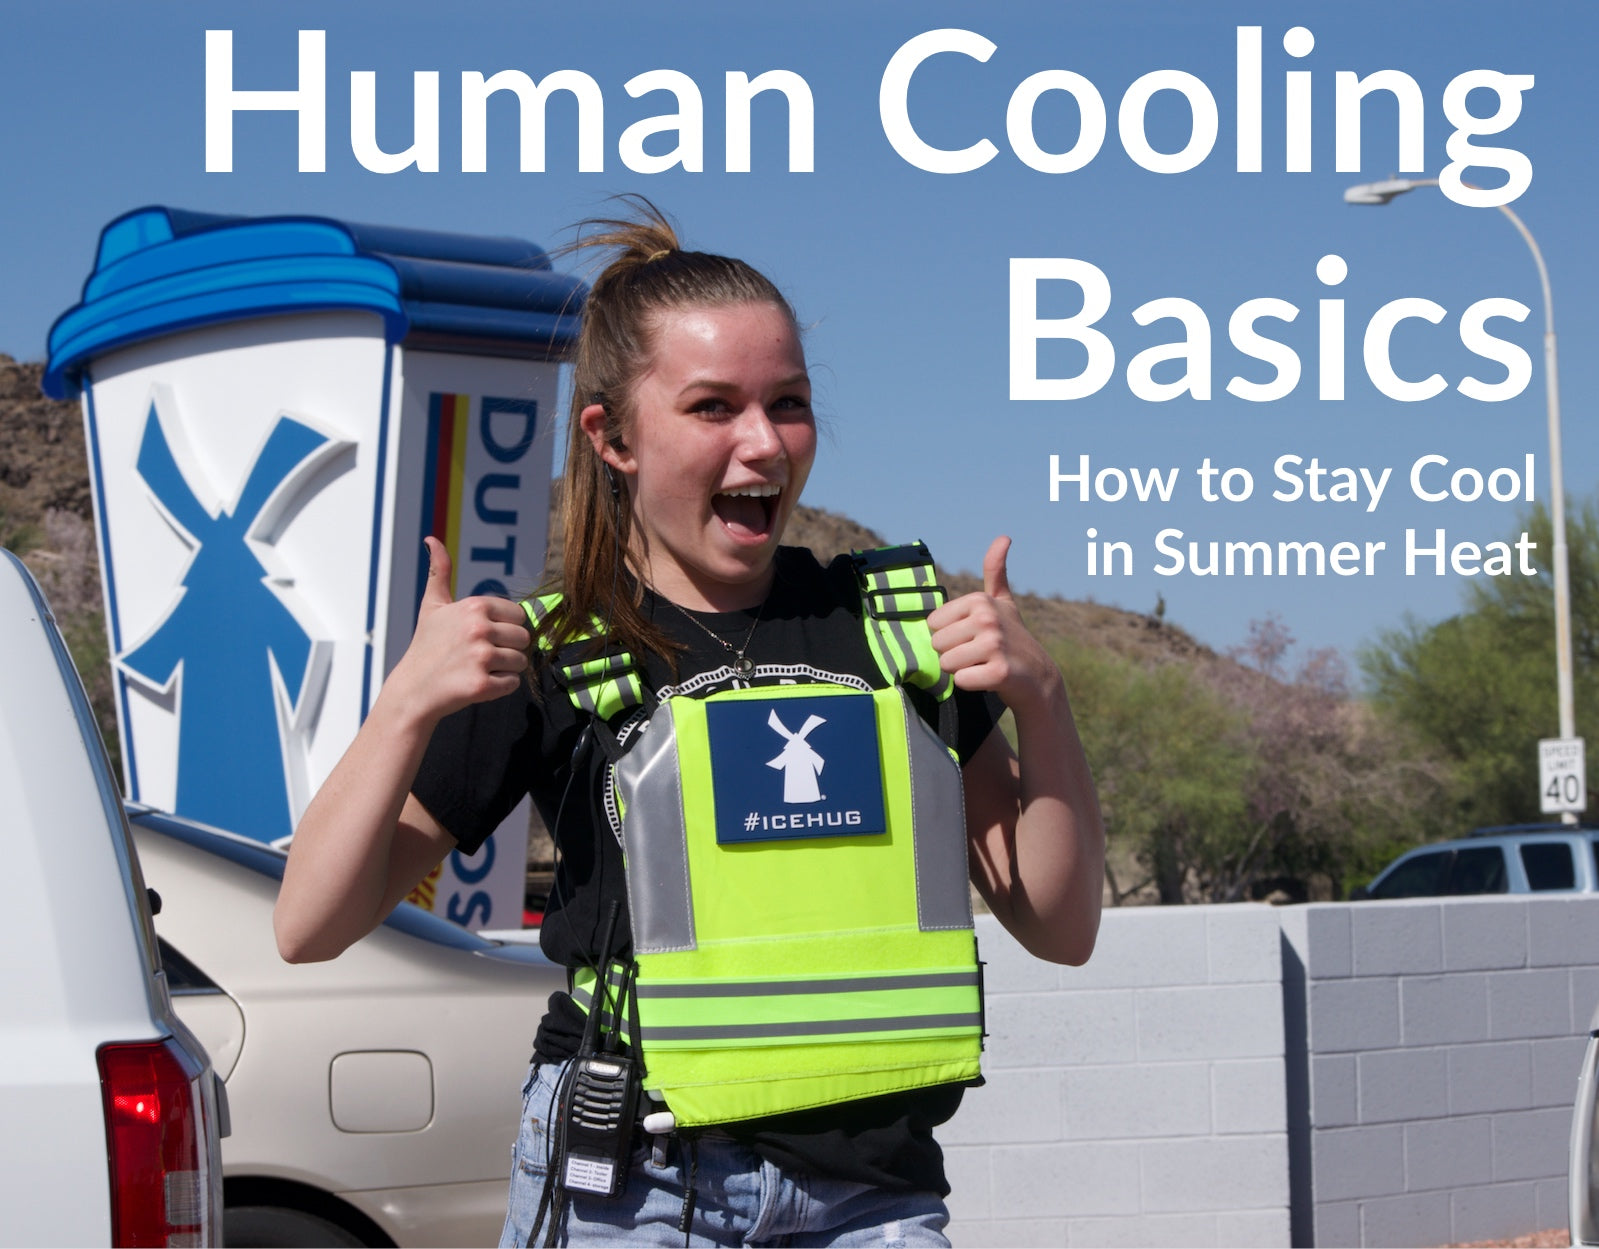 Human Cooling Basics: How to Stay Cool in Summer Heat